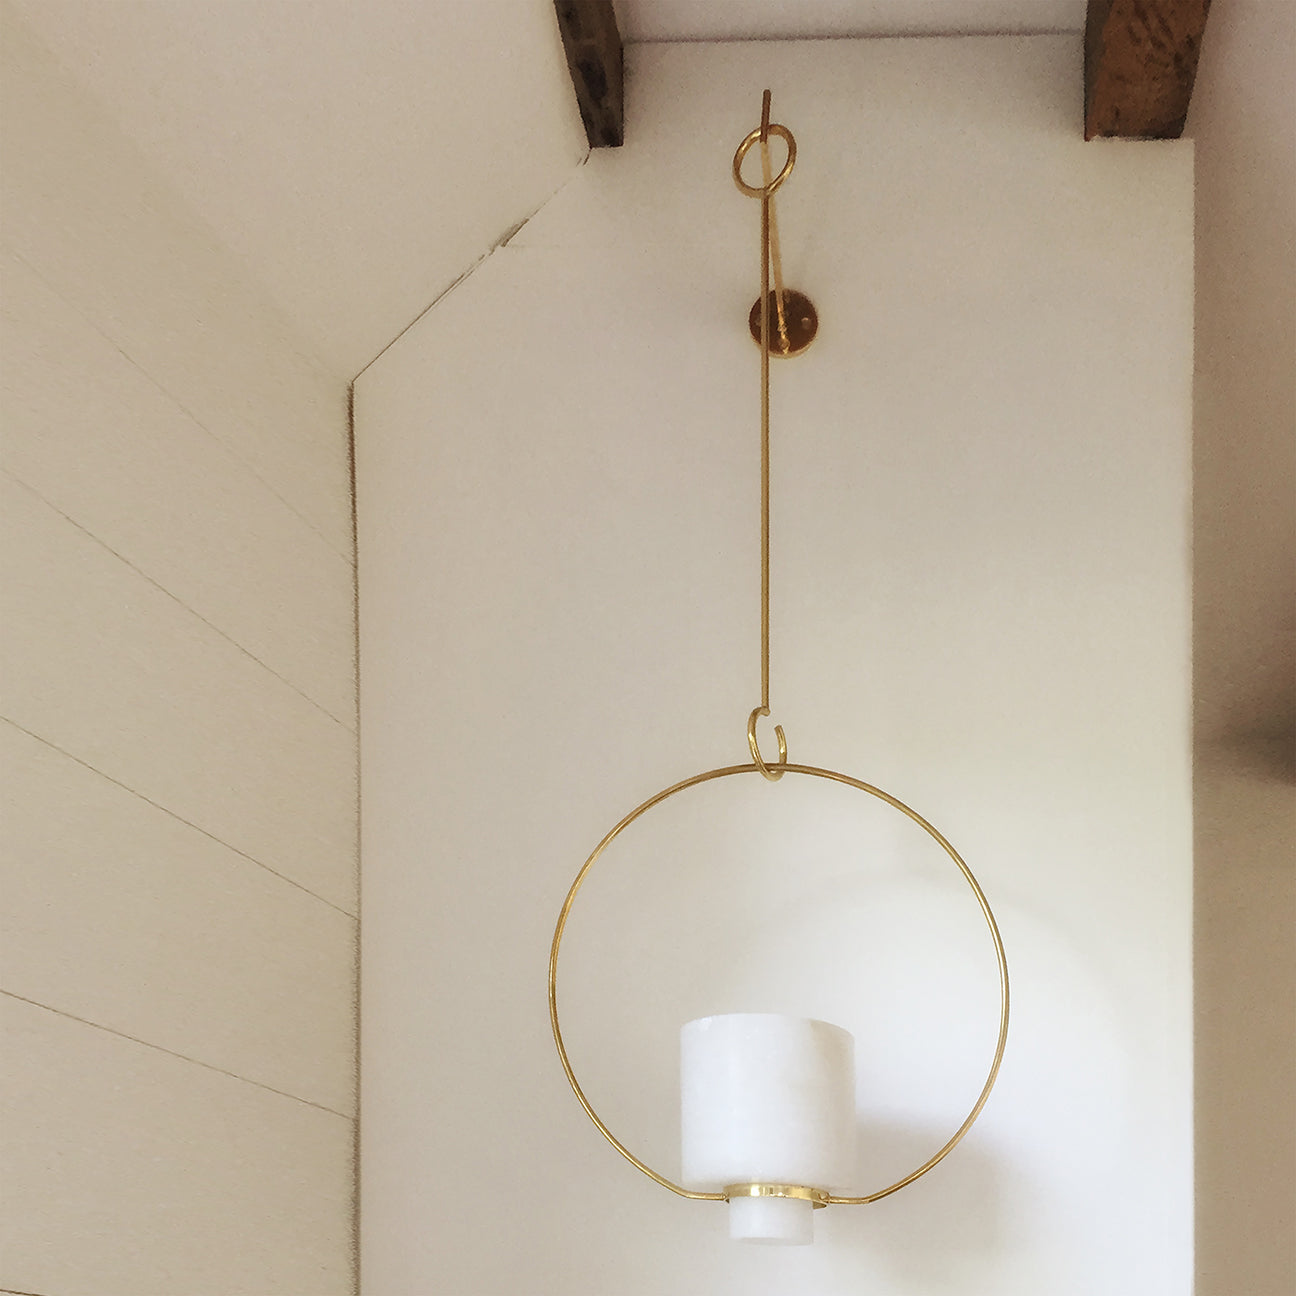 M+A NYC Hanging Planter with Hook - Small - Alabaster